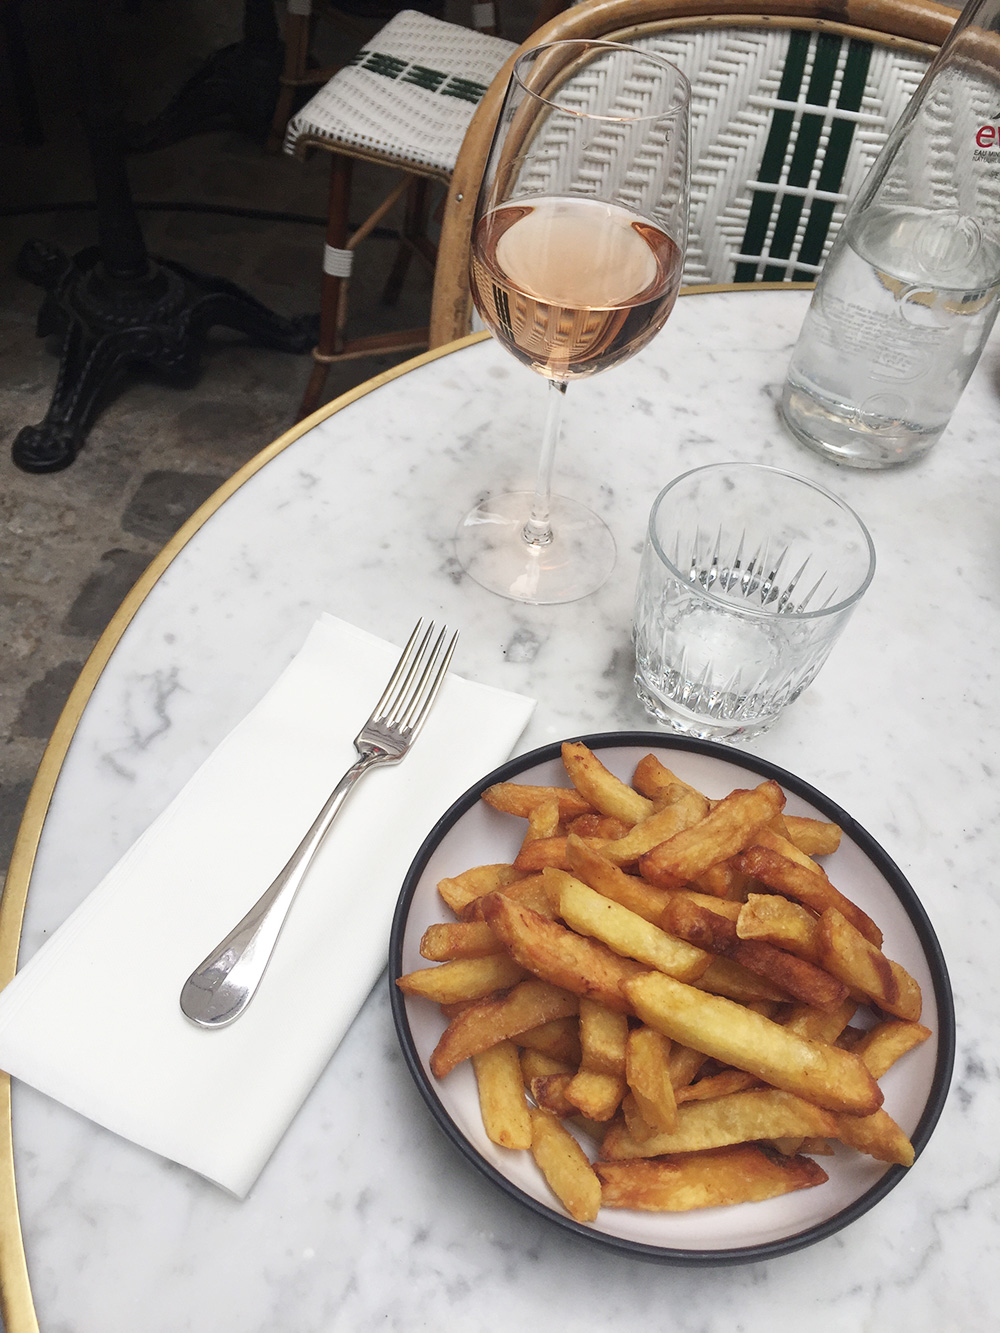 RosyCheeks-blog-The-Hoxton-Hotel-Paris-truffled-fries